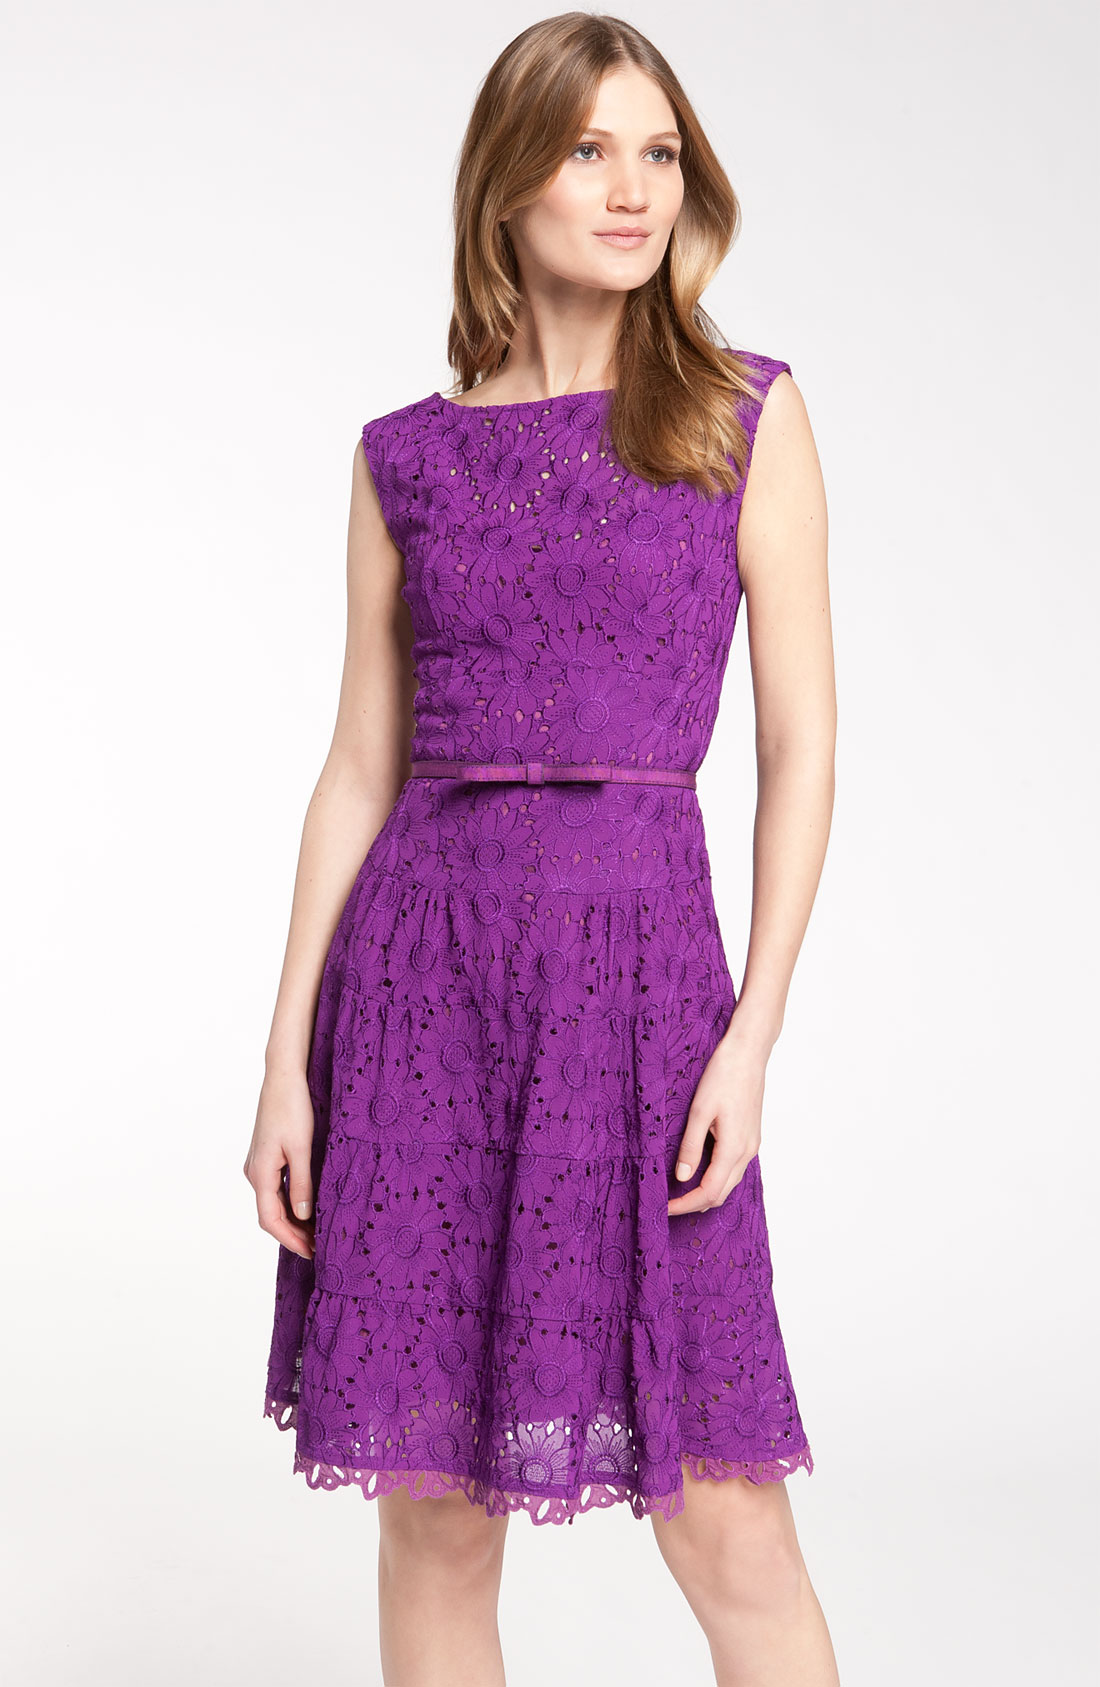 nanette lepore balloon belted lace dress in purple violet